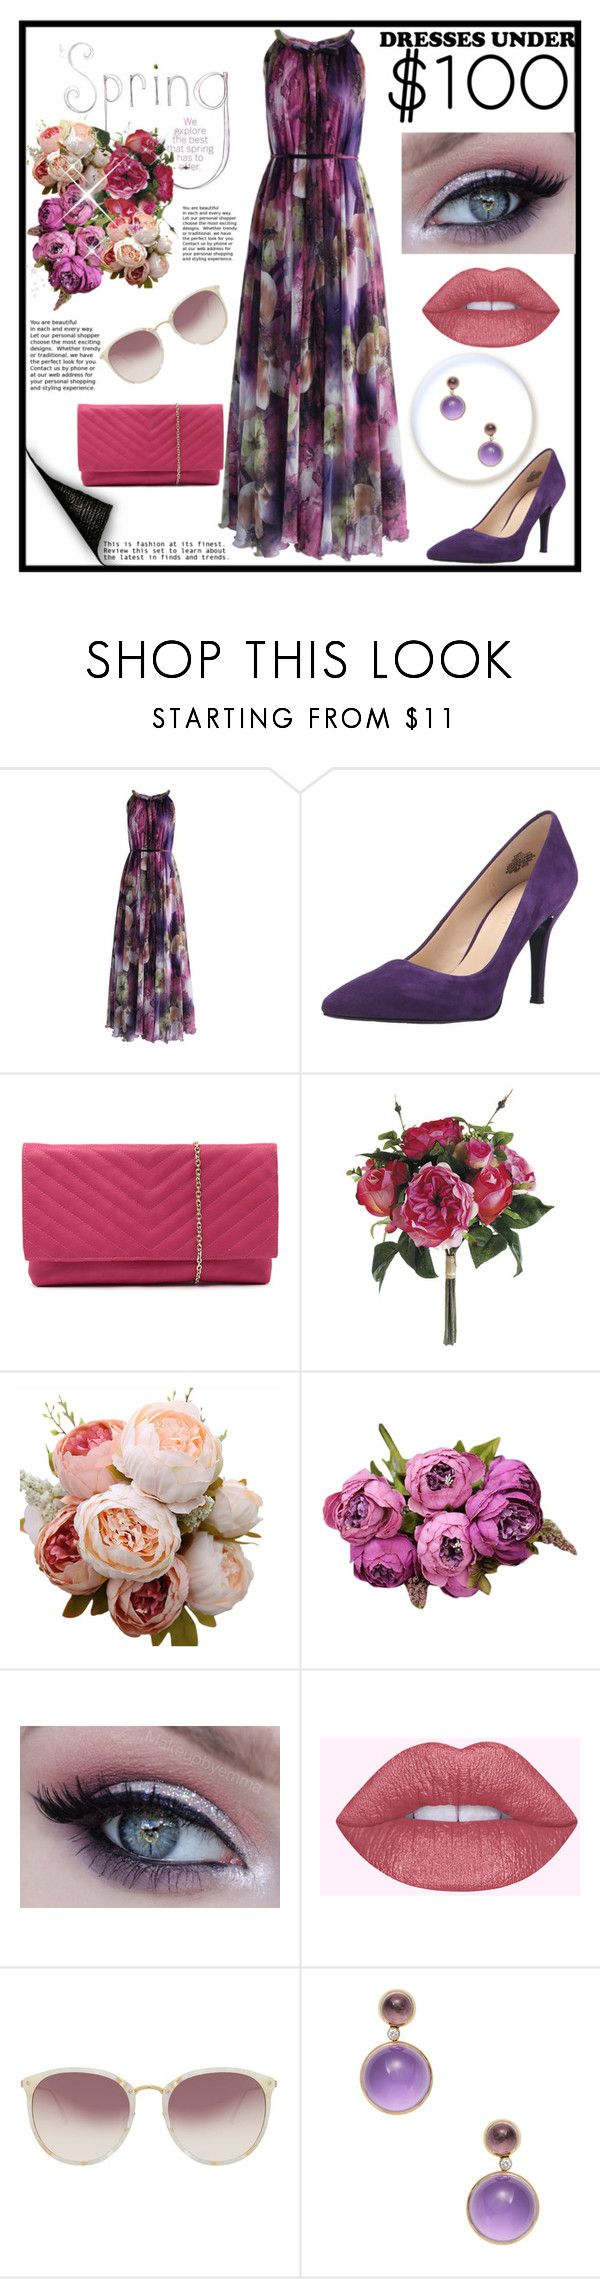 """#under100"" by christinadrussell ❤ liked on Polyvore featuring Chicwish, Nine West, Jendi, Linda Farrow, Goshwara and dress"